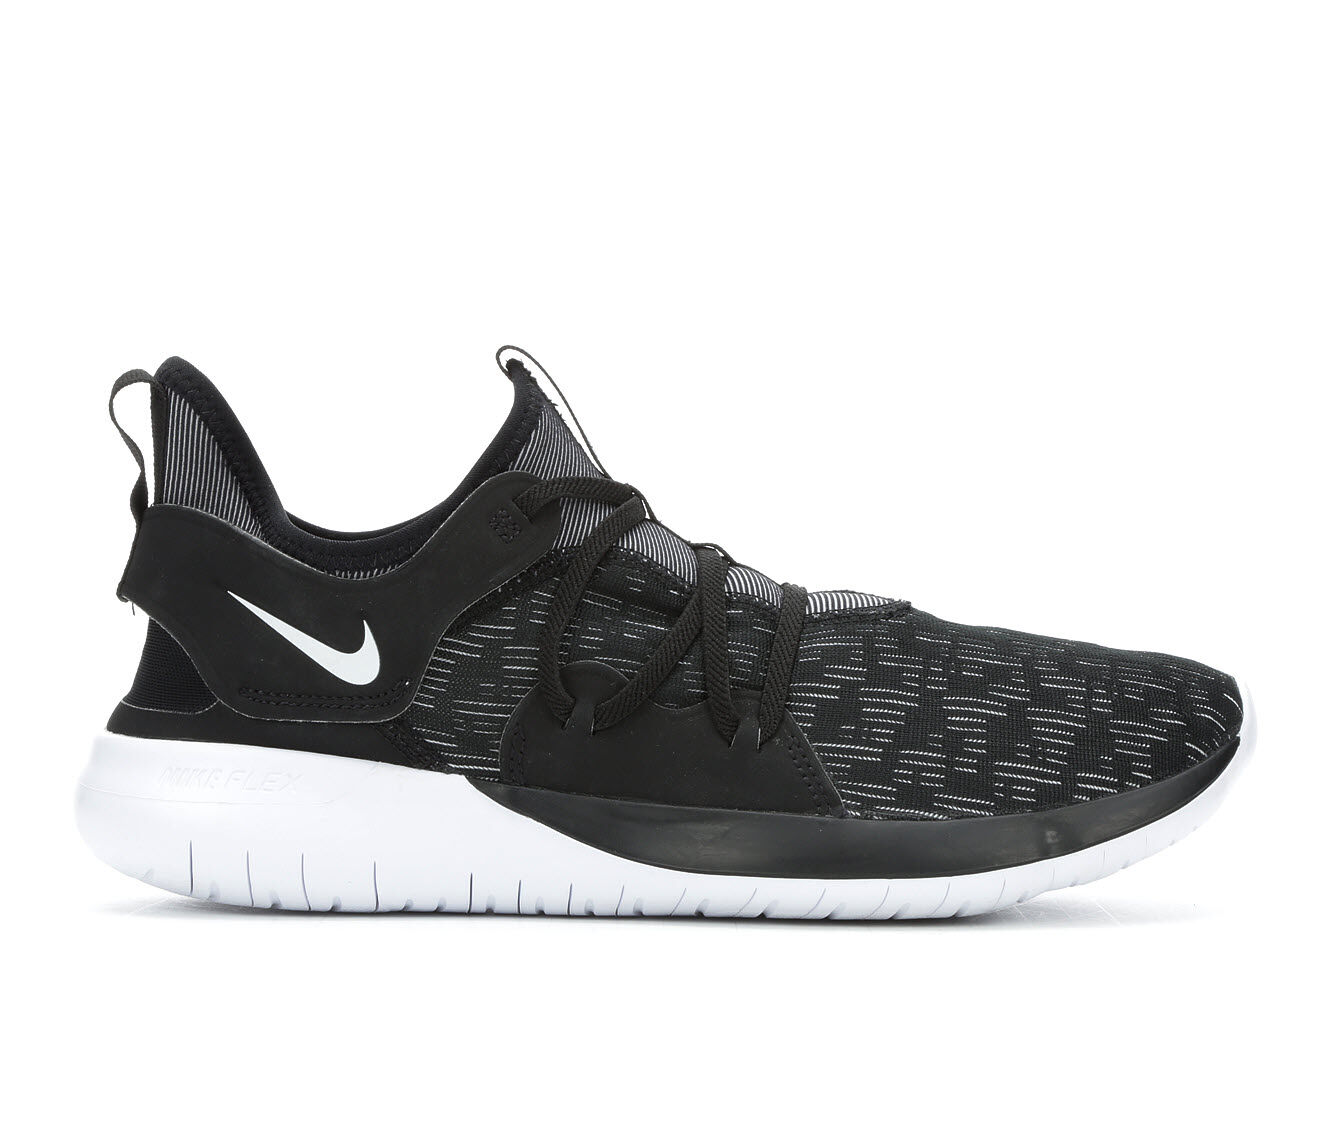 purchase latest style Men's Nike Flex Contact 3 Running Shoes Blk/Wht 004